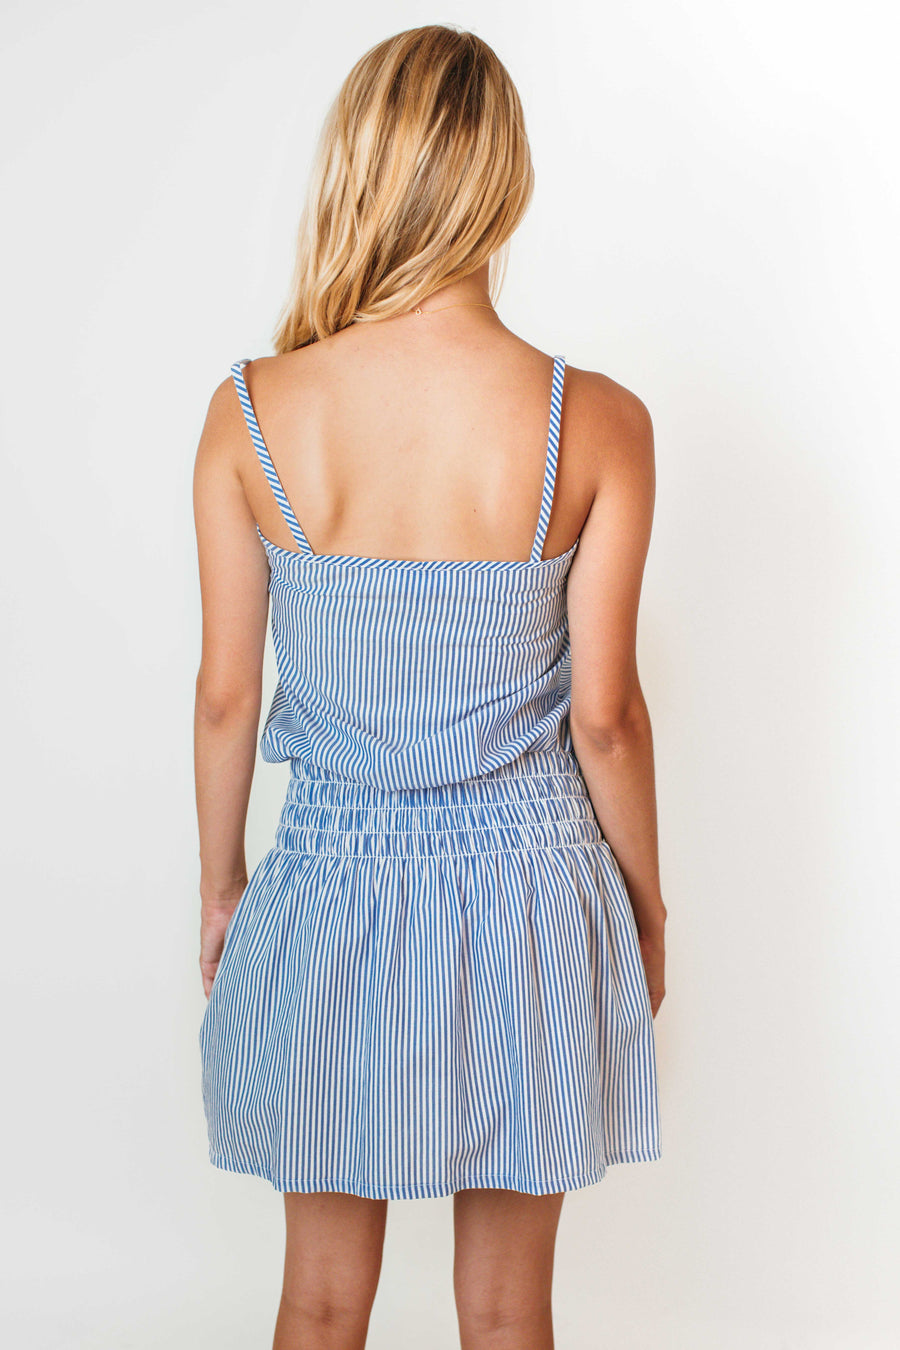 OLIVIA DRESS OCEAN STRIPE *LIMITED*EDITION*